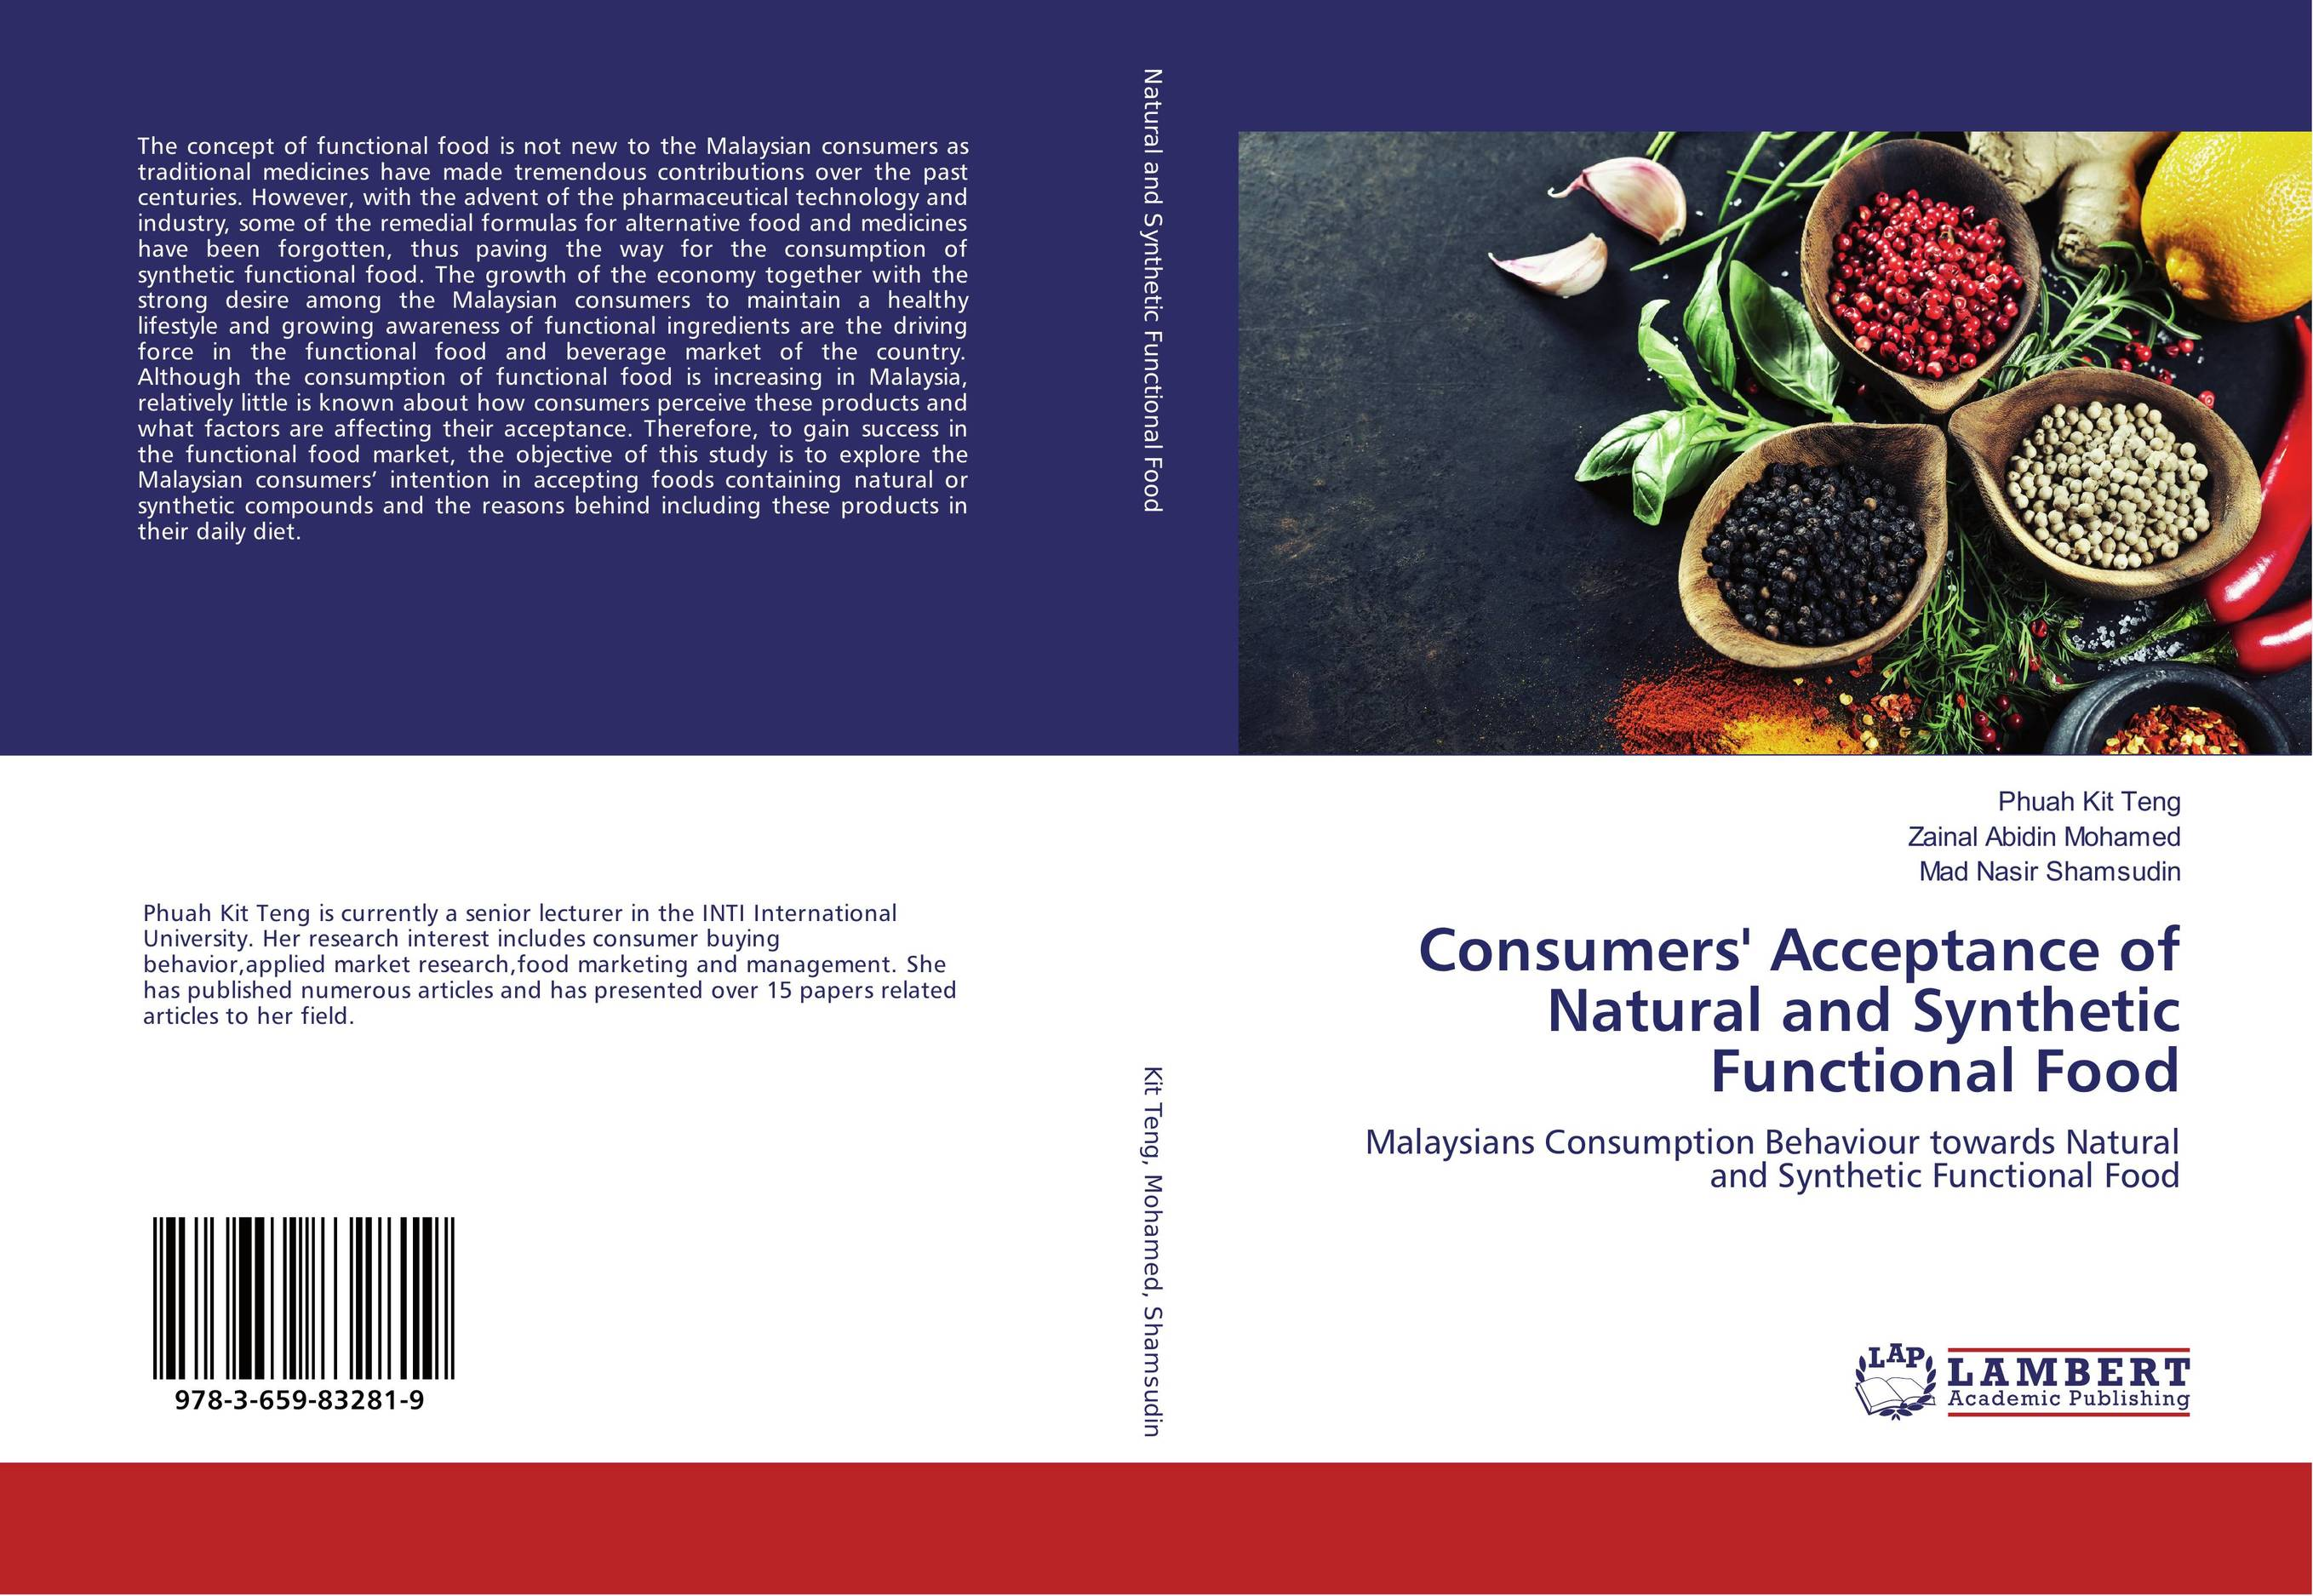 Consumers' Acceptance of Natural and Synthetic Functional Food